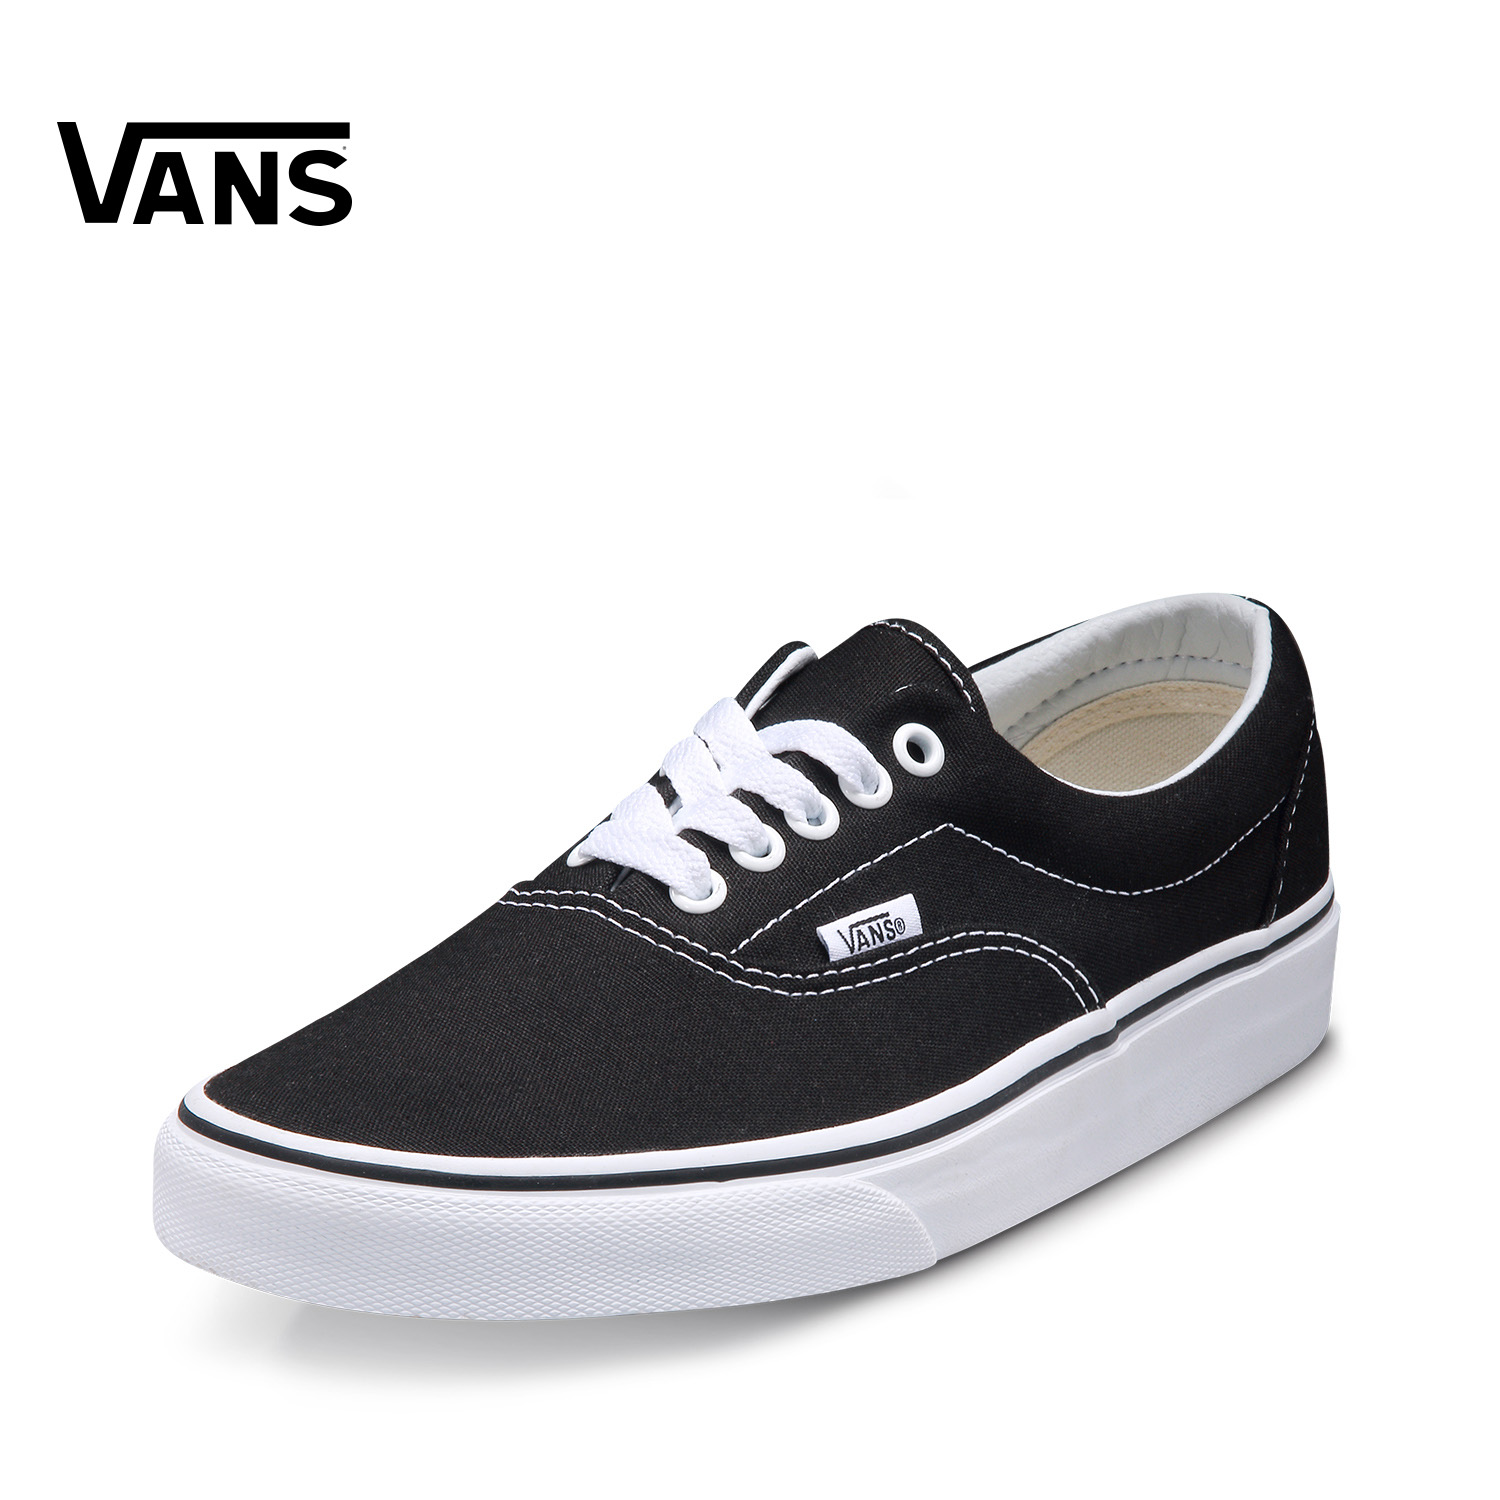 54342664b0 Original New Arrival Vans Mens   Womens Classic Low top Skateboarding Shoes  Sneakers Canvas Comfortable Era VN 0EWZBLK-in Skateboarding from Sports ...